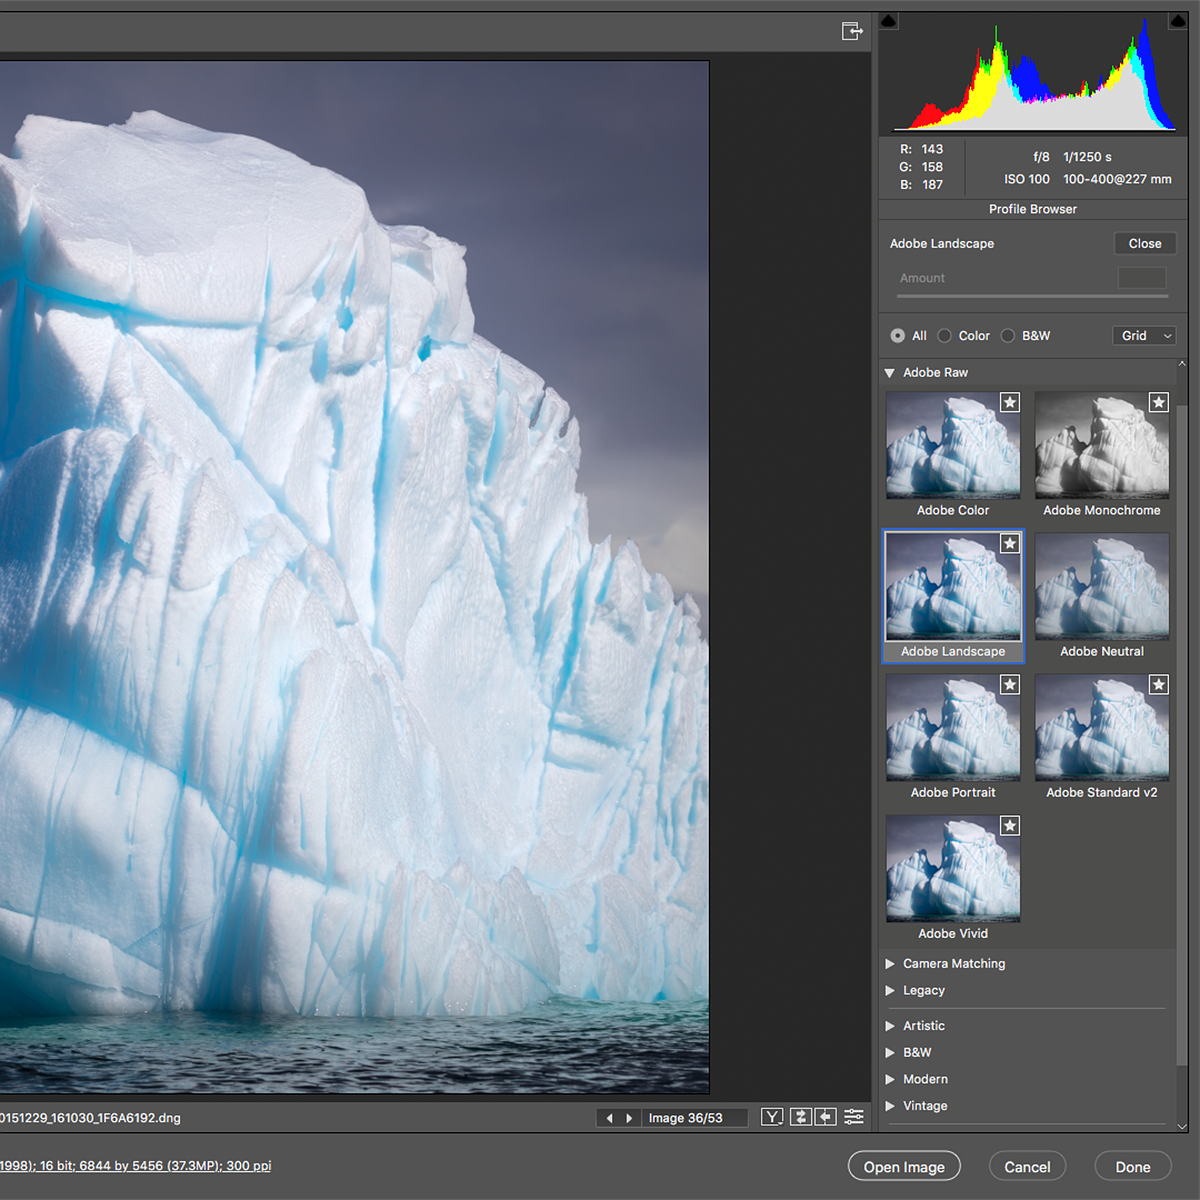 Adobe apologizes for Lightroom Classic CC bugs, releases bug